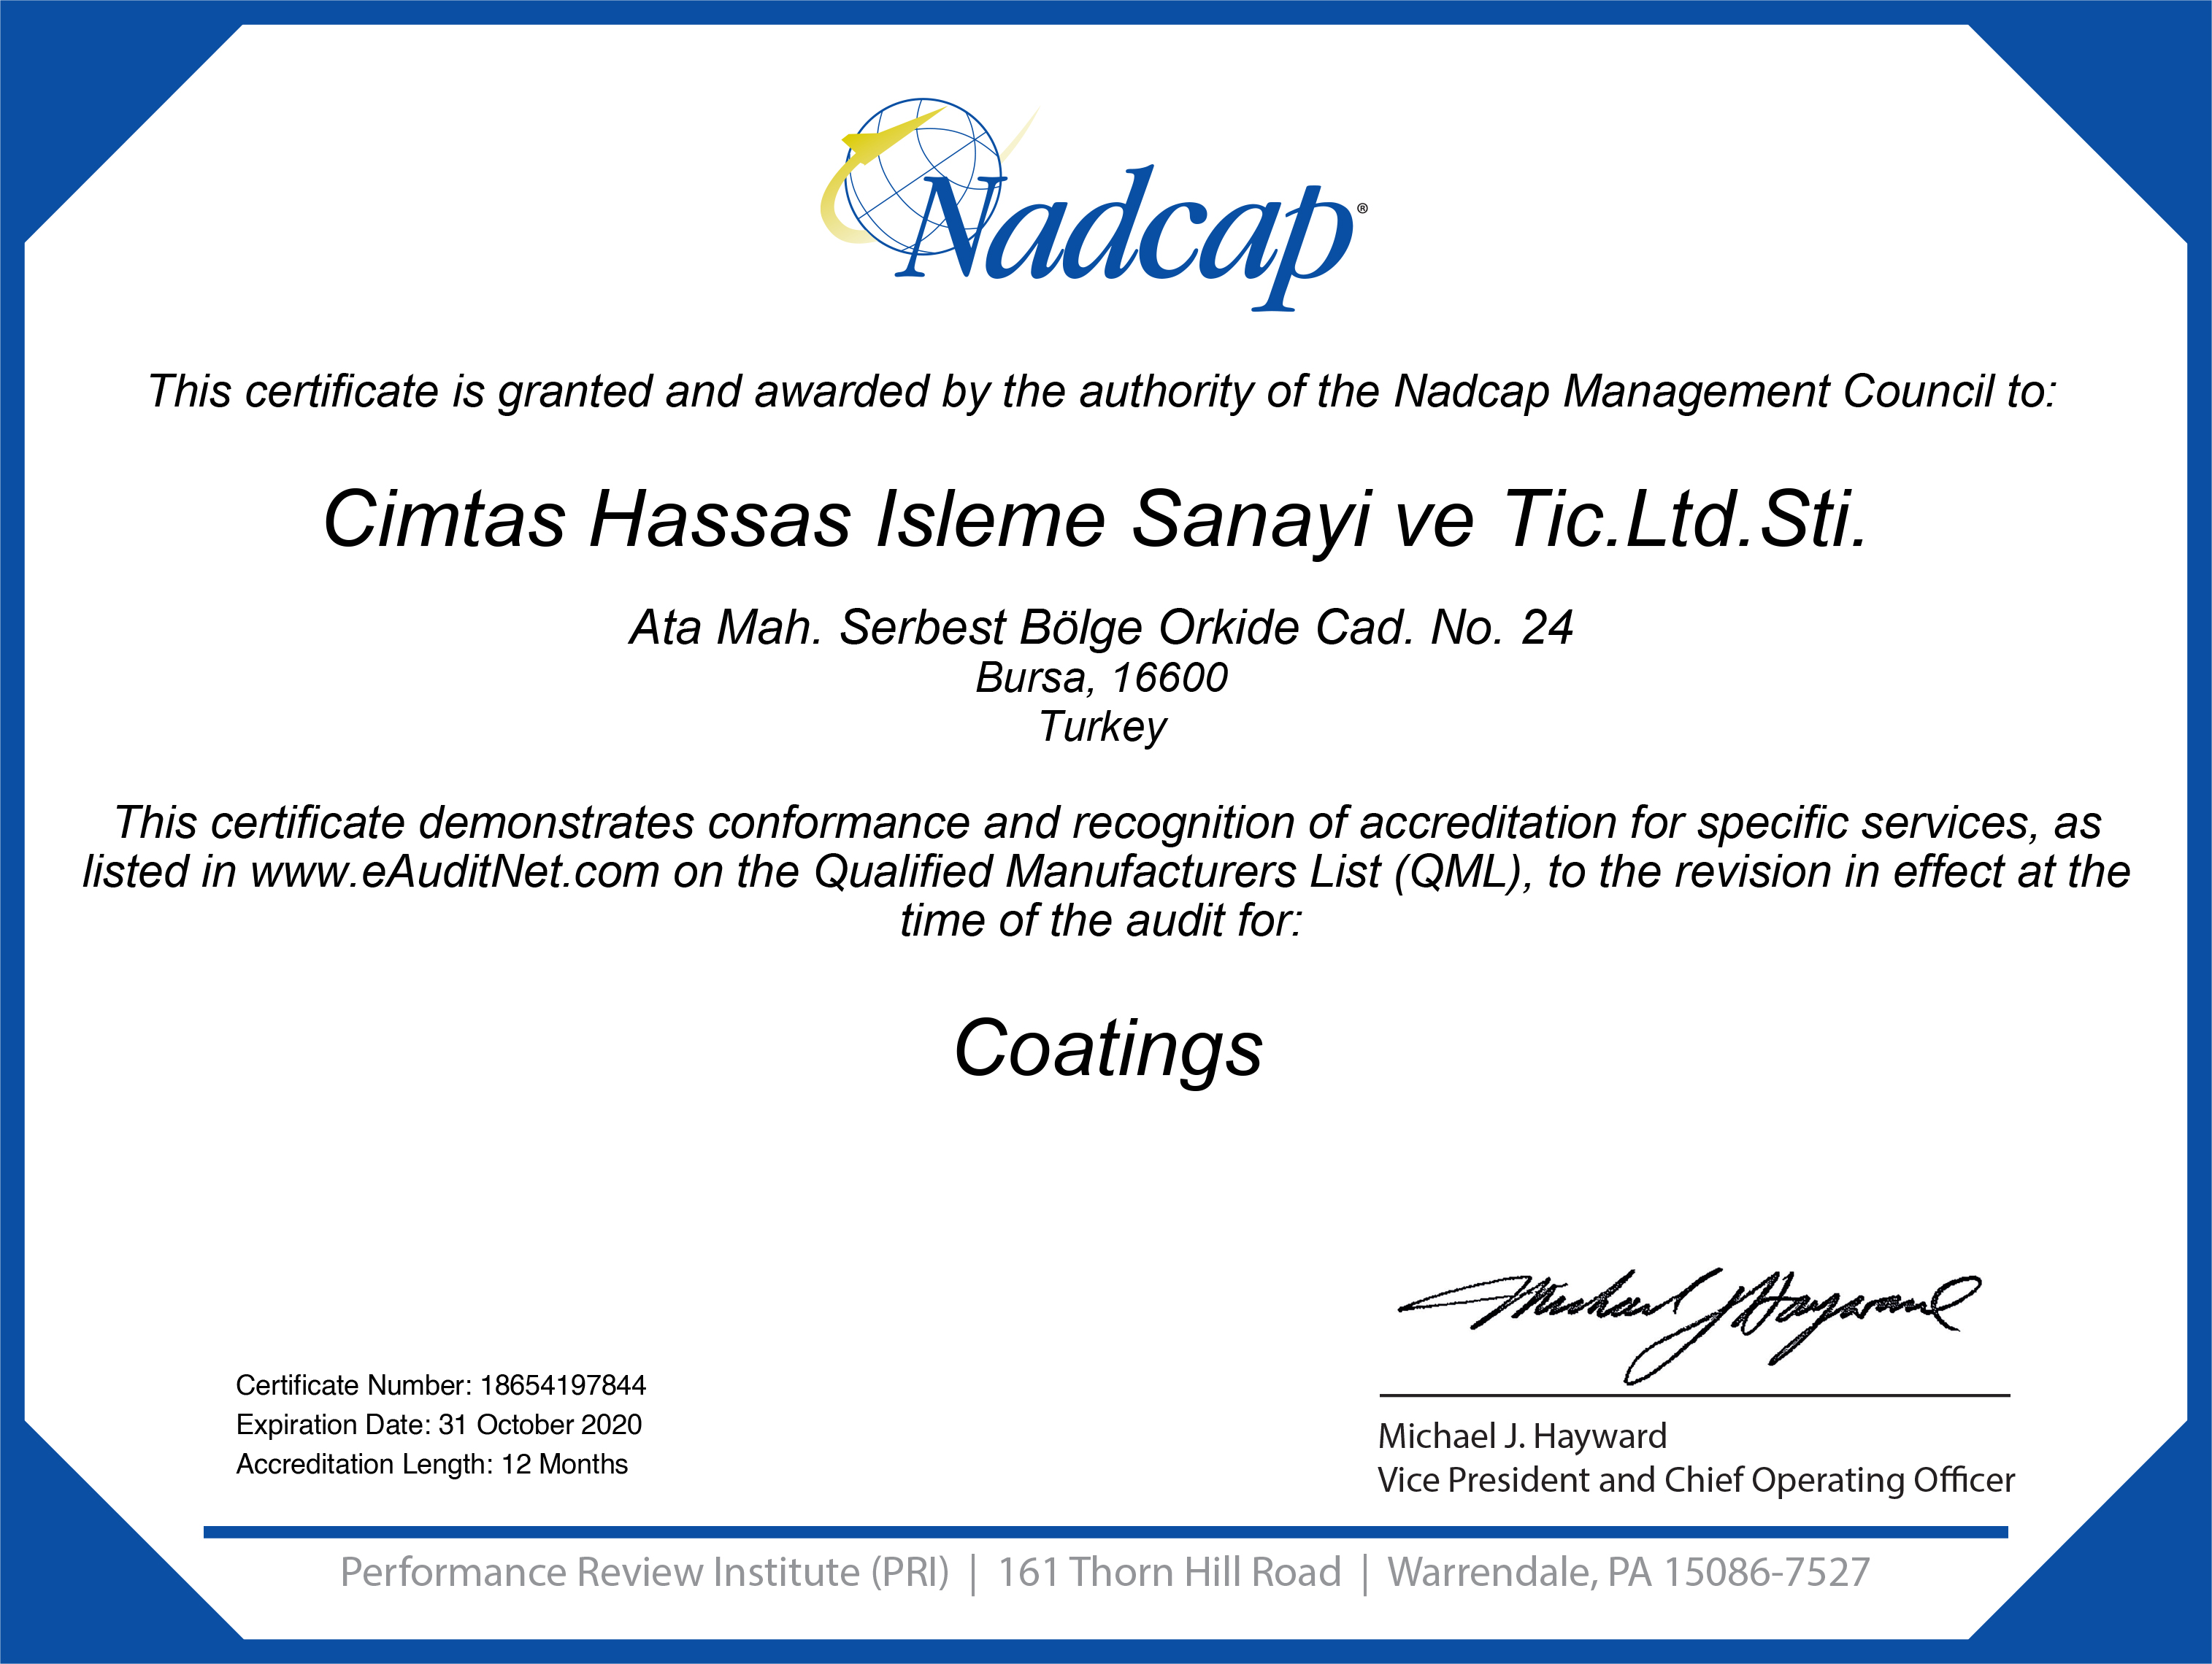 'Nadcap certificate CT Audit #197844